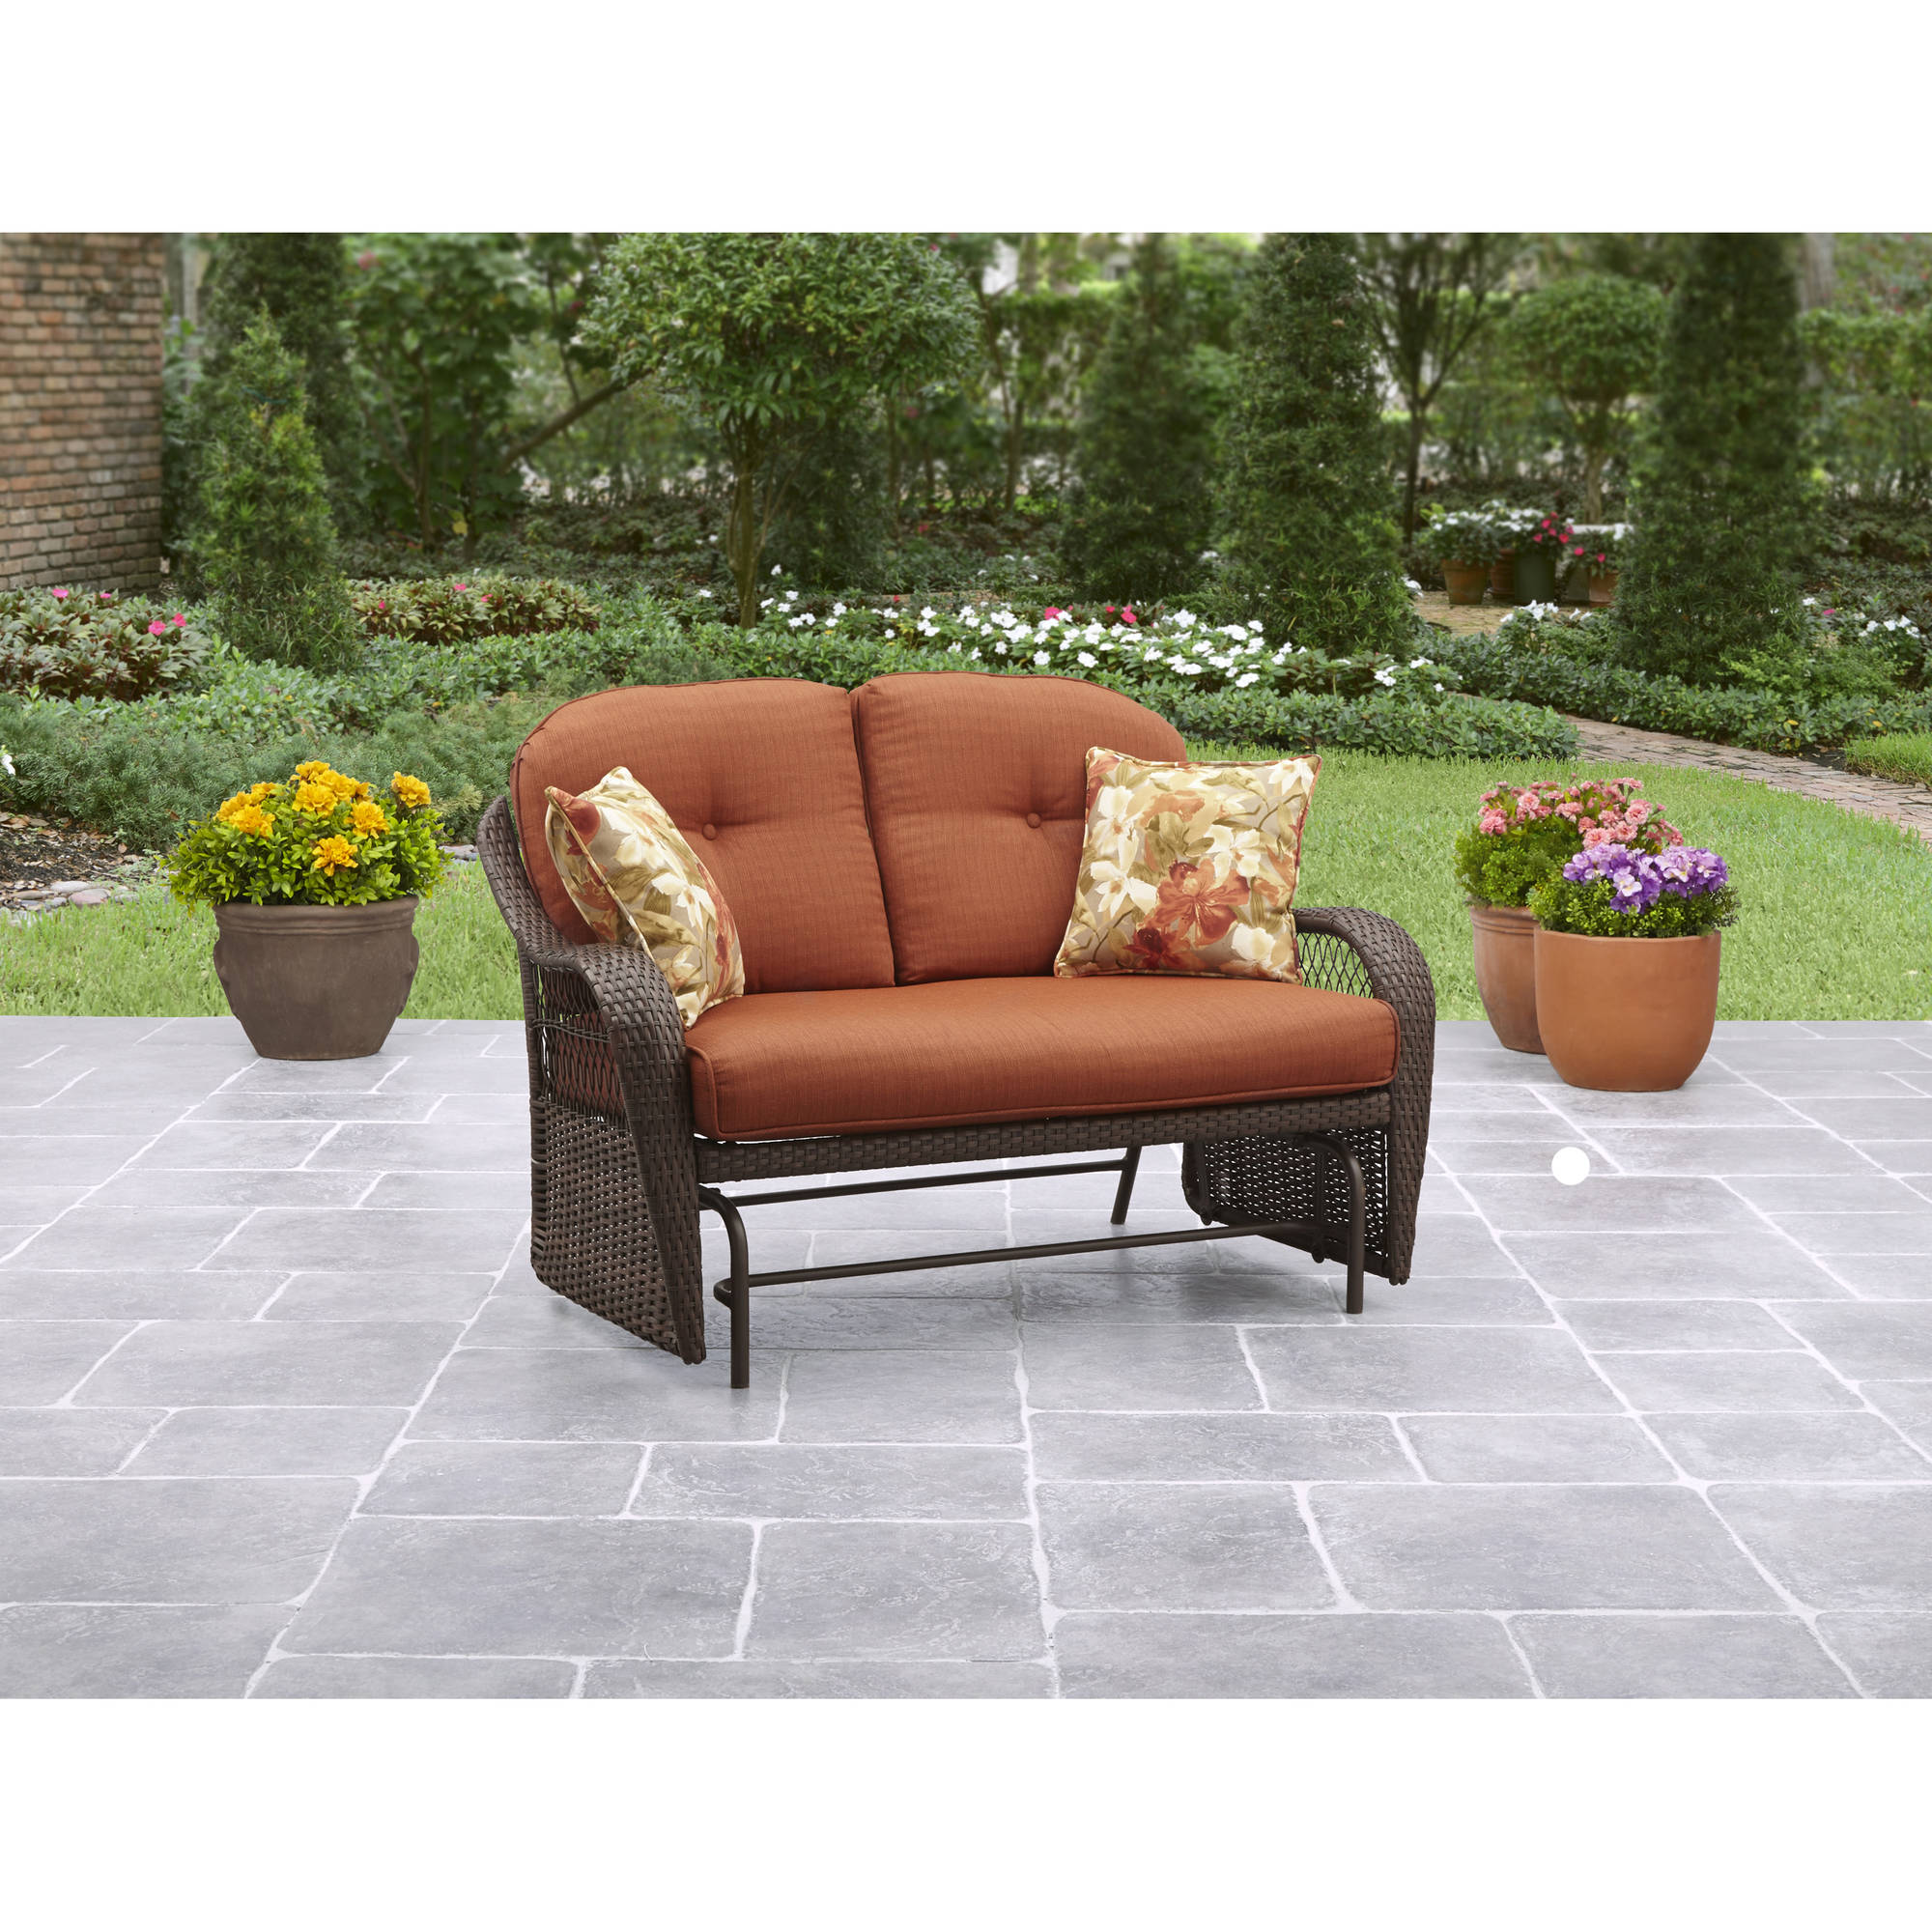 Better Homes & Gardens Azalea Ridge 2-Person Outdoor Glider ...